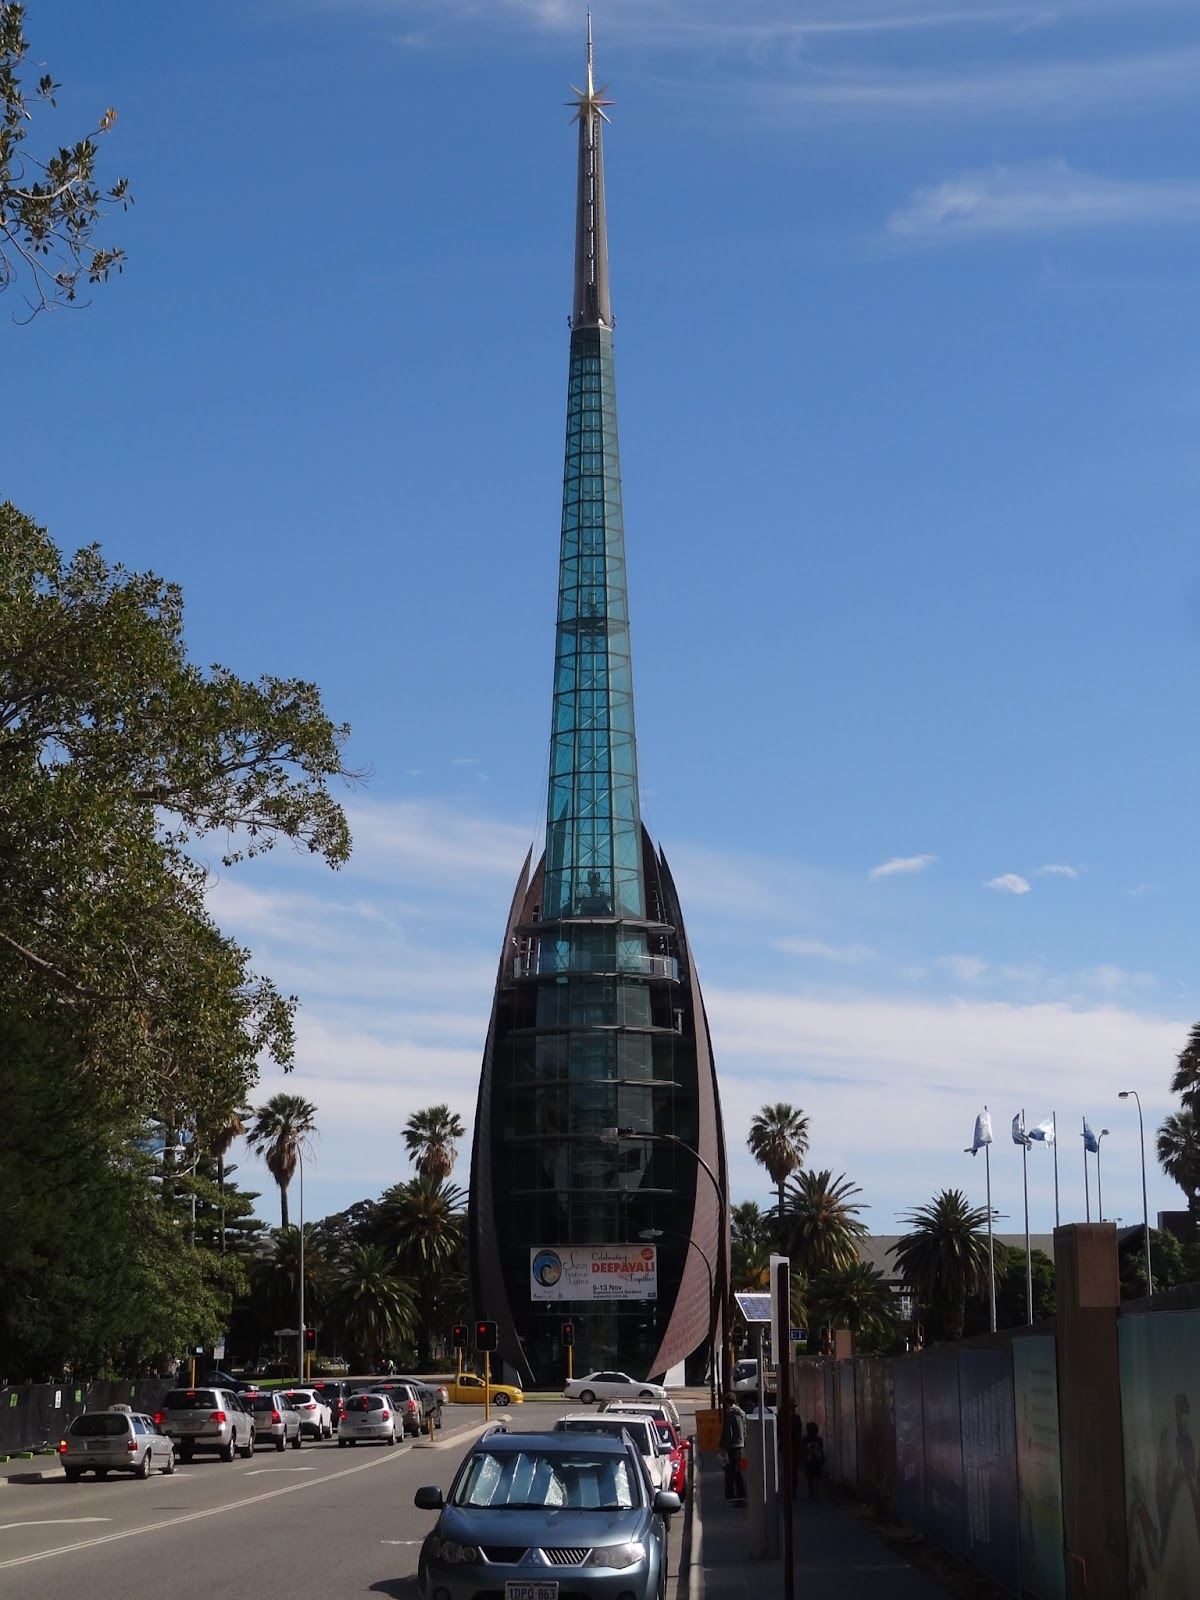 Back in Perth at the Bell Tower